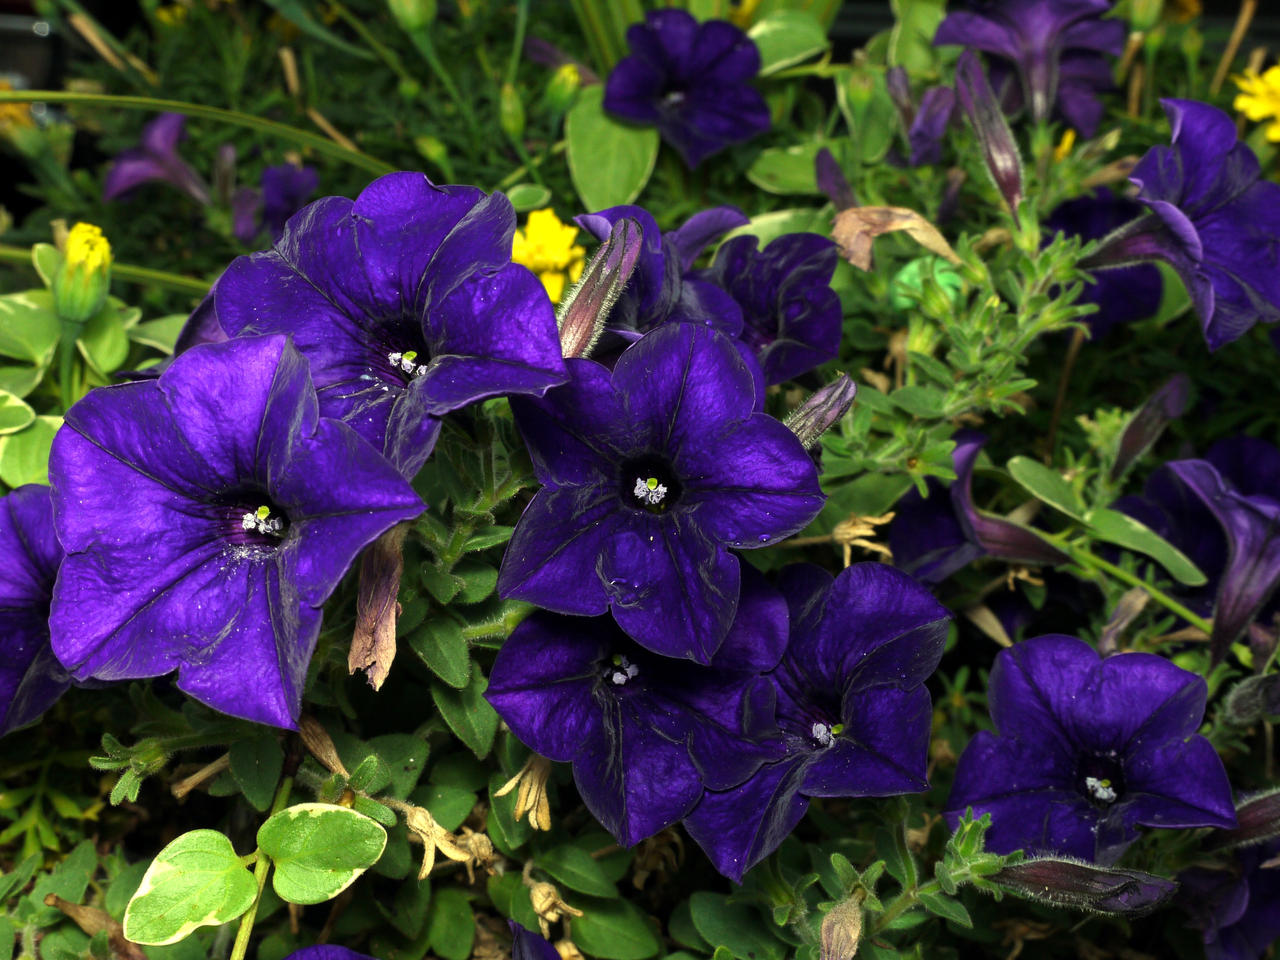 home depot flowers with Purple Flowers 245363468 on Demise Flappy Bird Heres Can Keep Playing together with Vaso Per Piante besides My Island Really also Sky Hd Wallpapers5 2 together with Cat Repellent Plants.